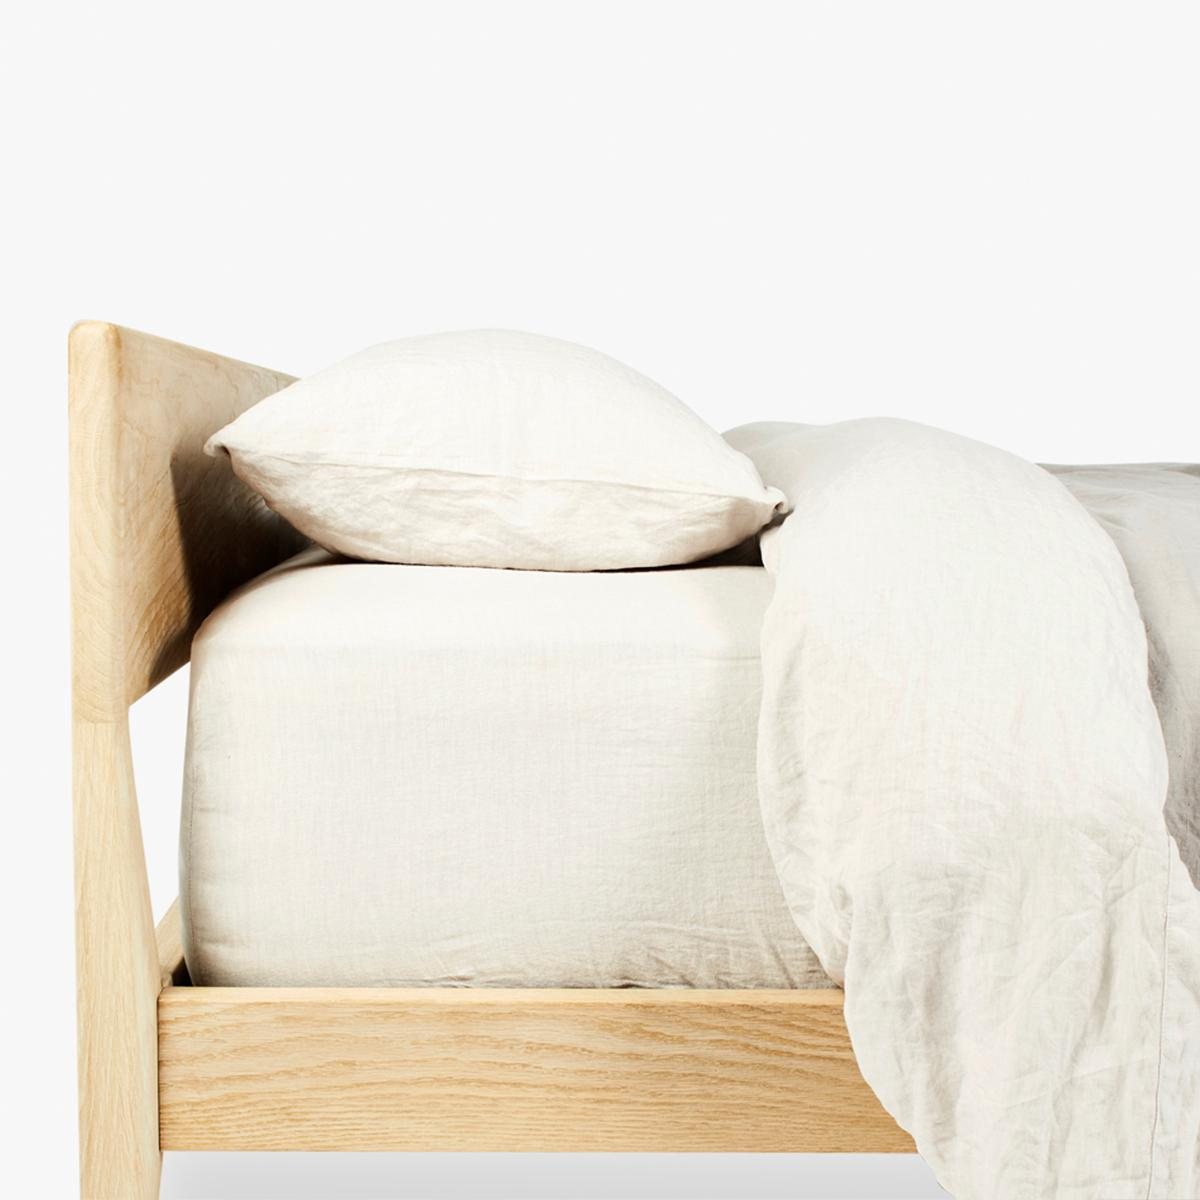 Bed-Side-9-Detail-1200-2